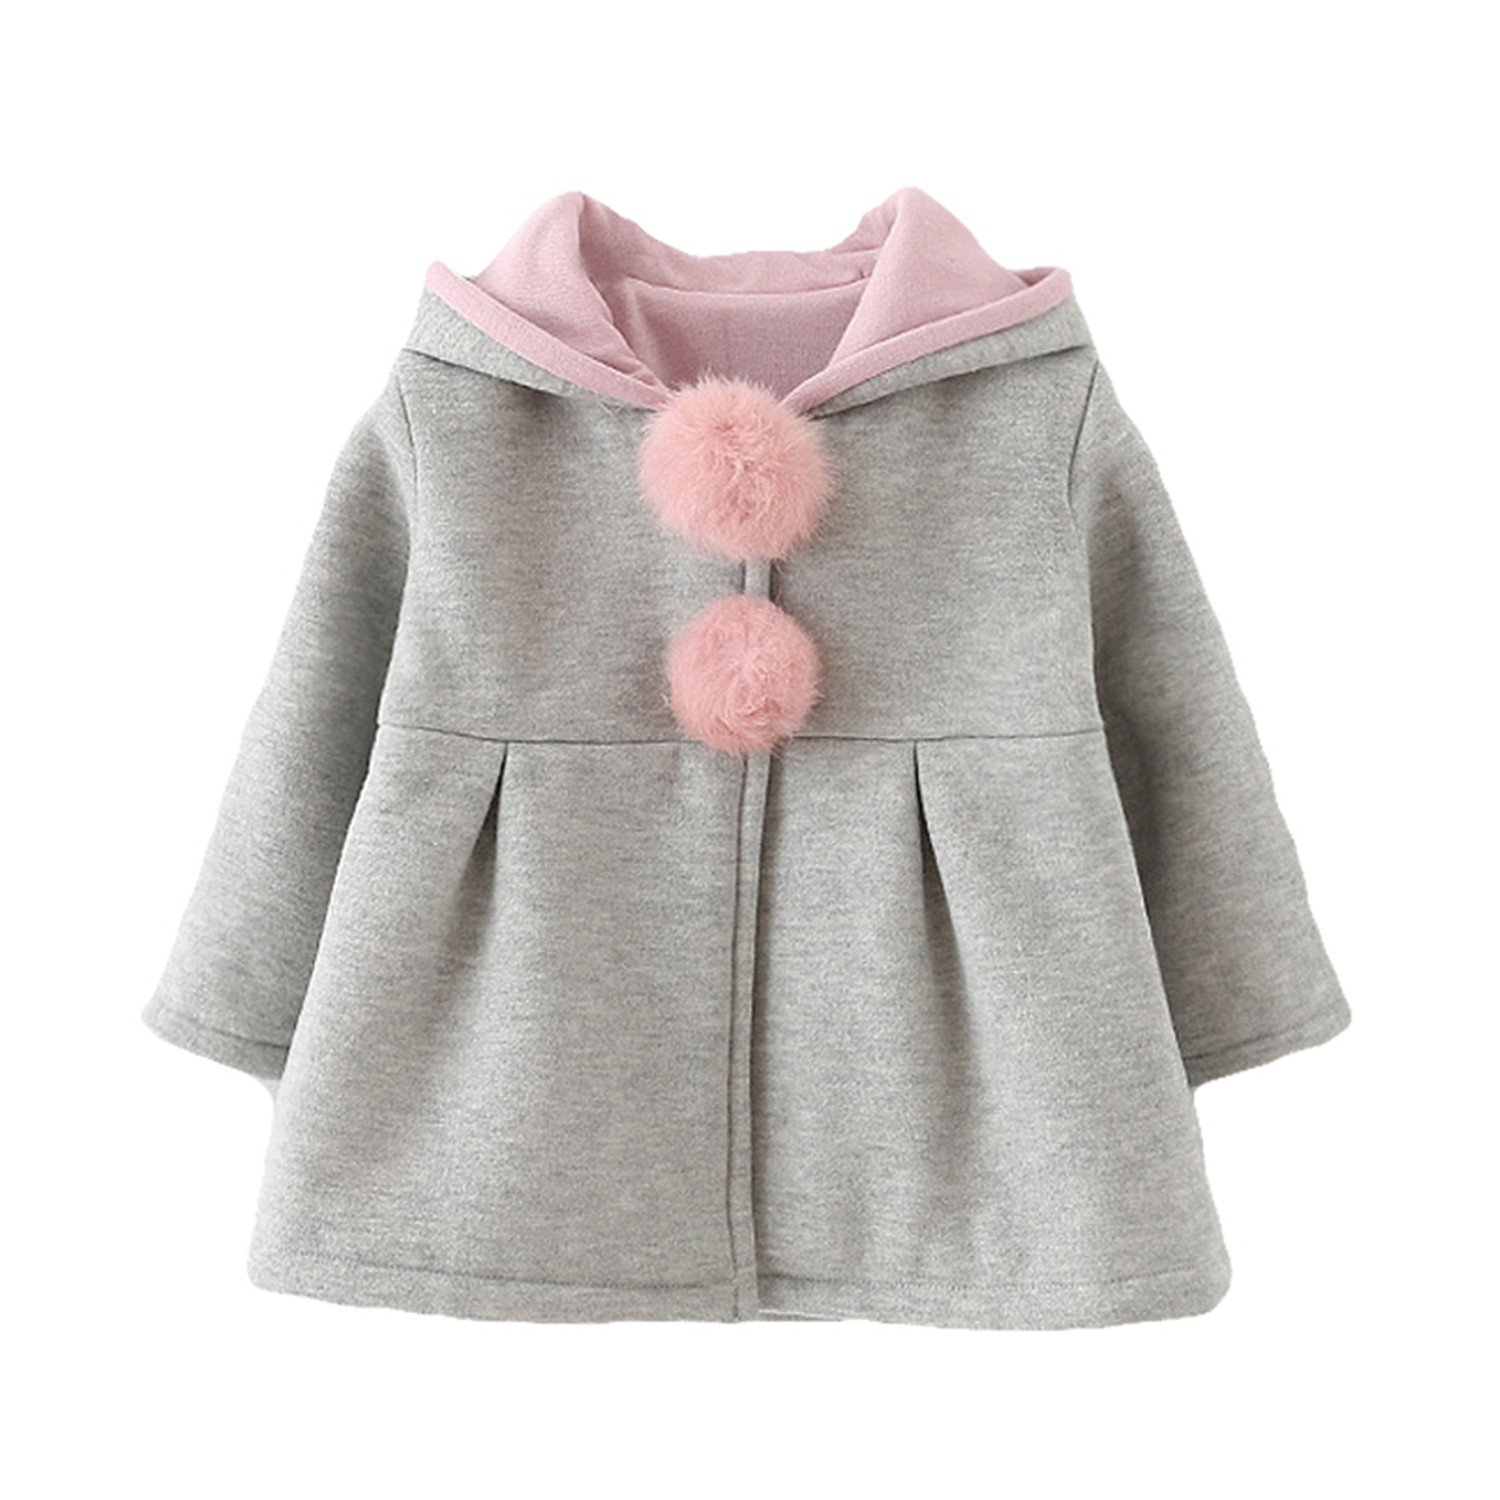 77fff0c41 Amazon.com  Mofgr Spring Children Jackets Baby Girl Rabbit Autumn ...